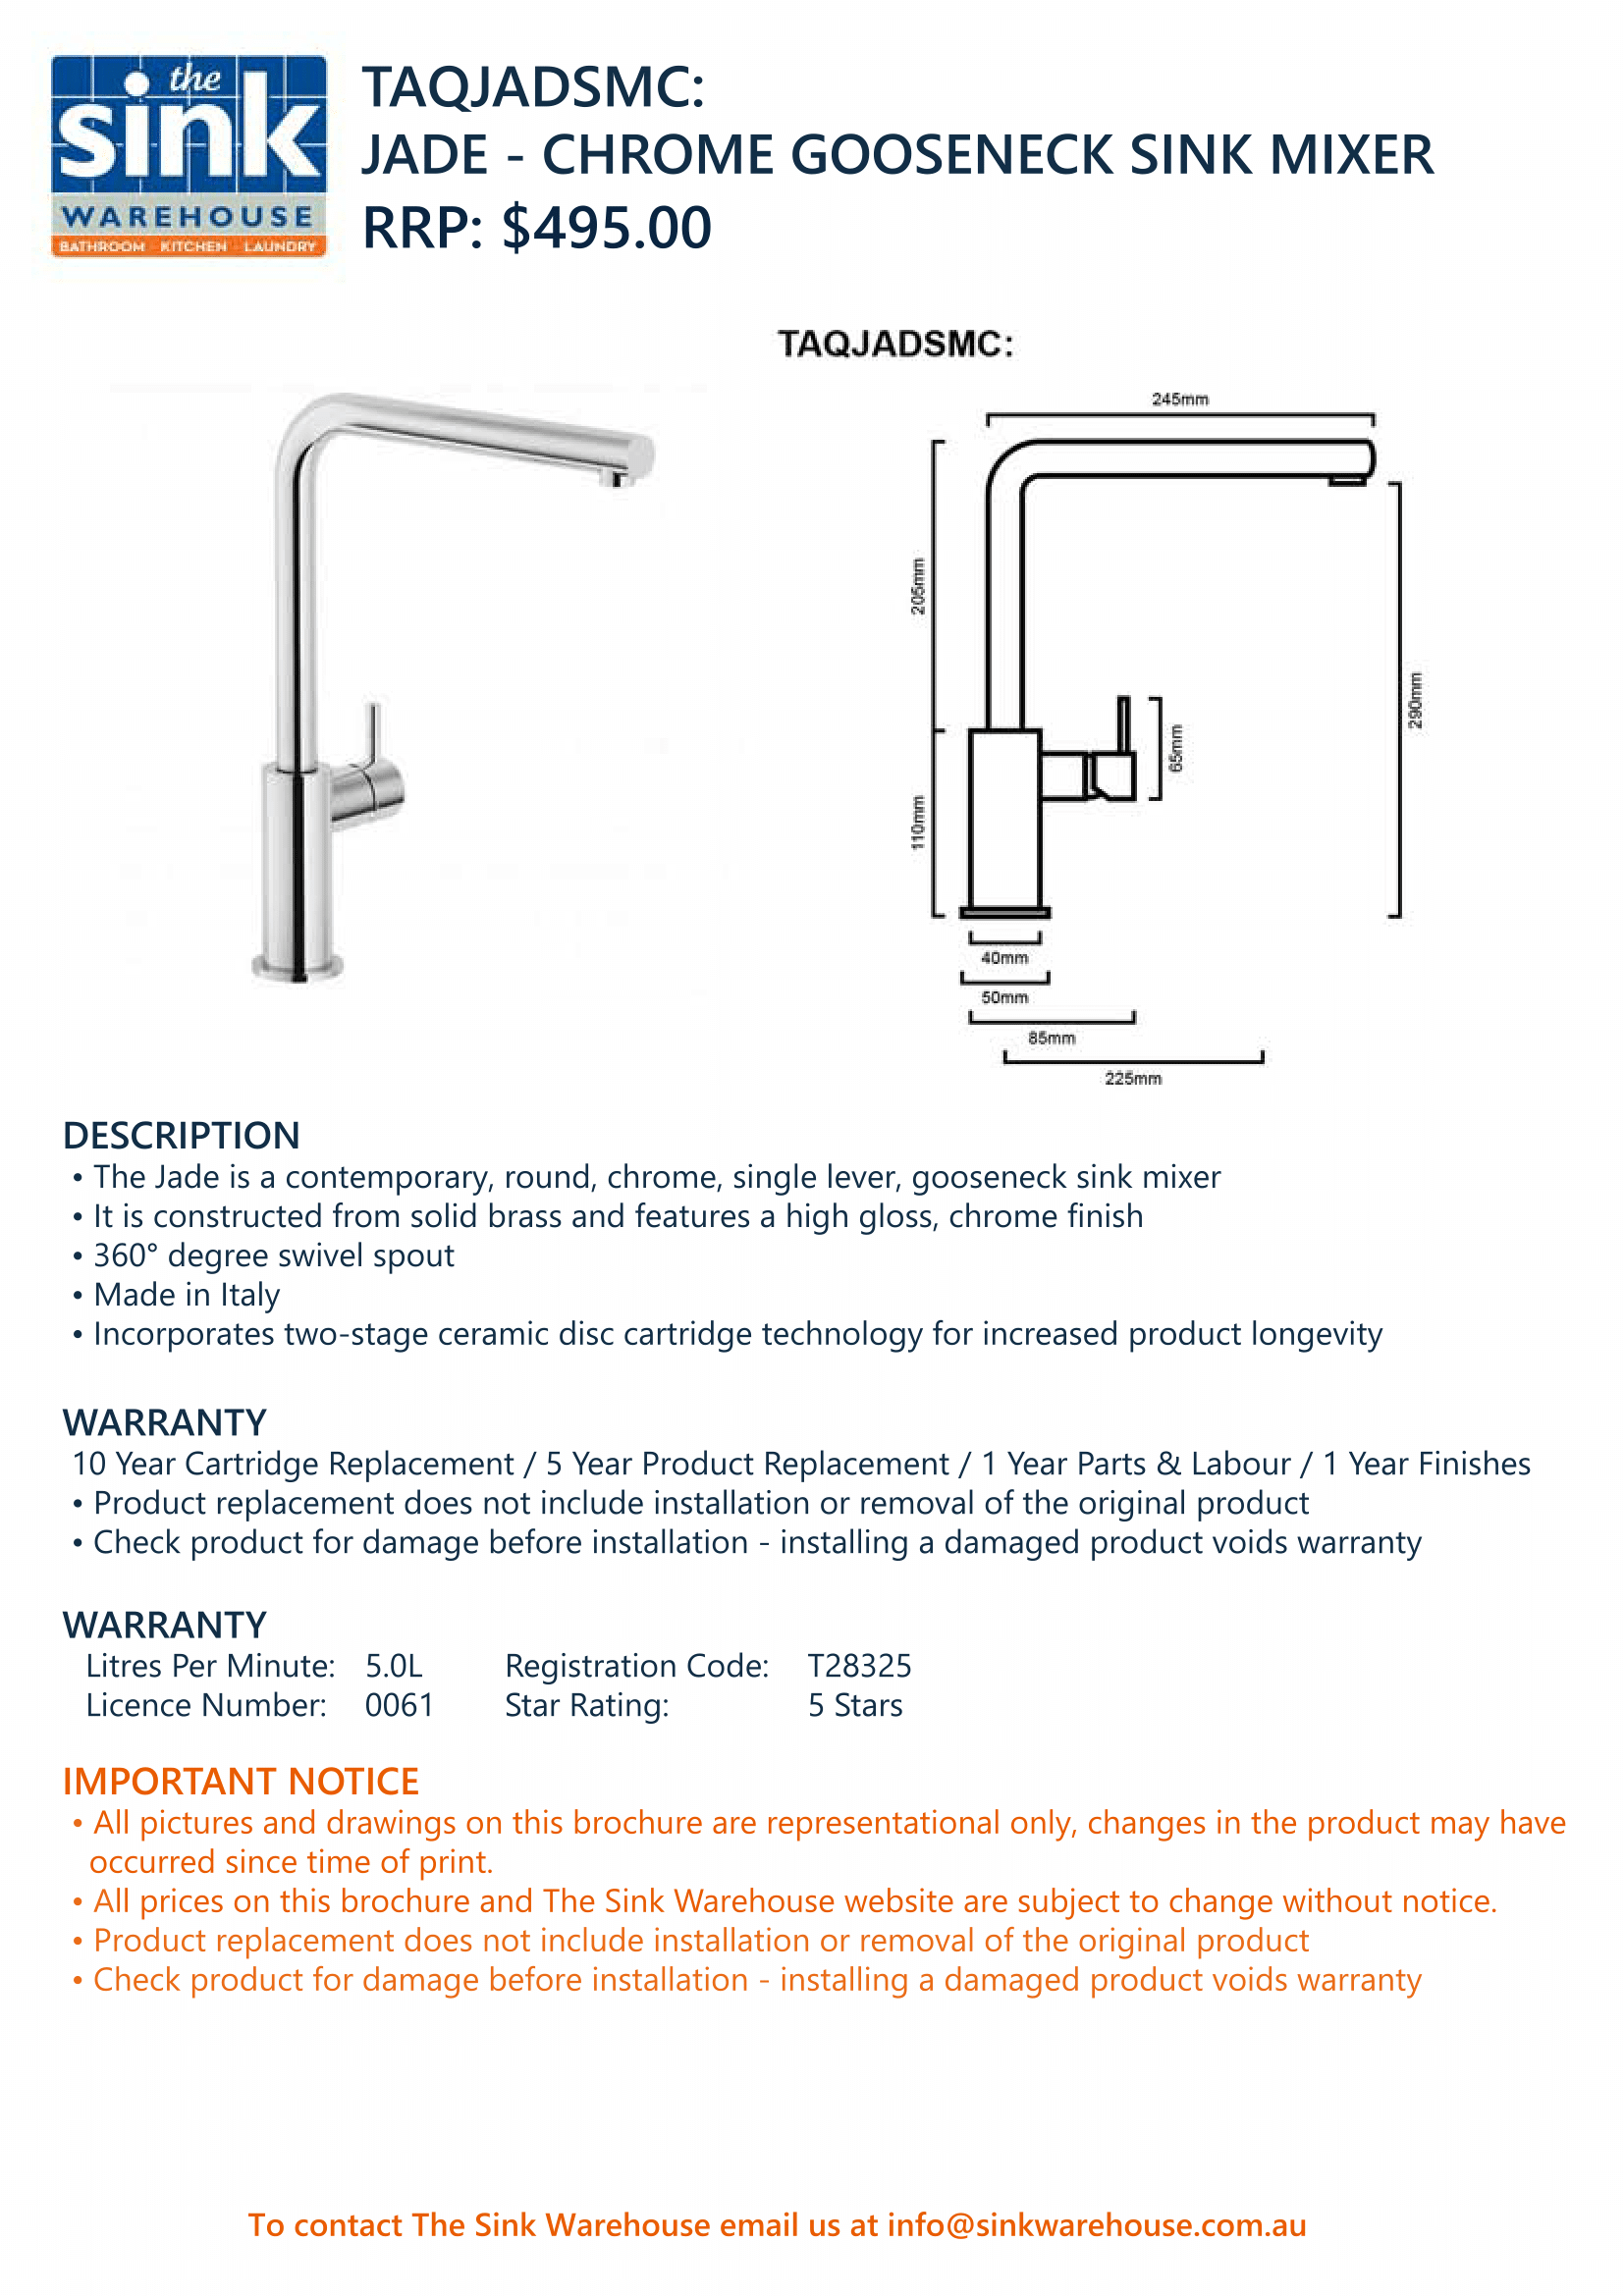 taqjadsmc-product-spec-sheet-1.png